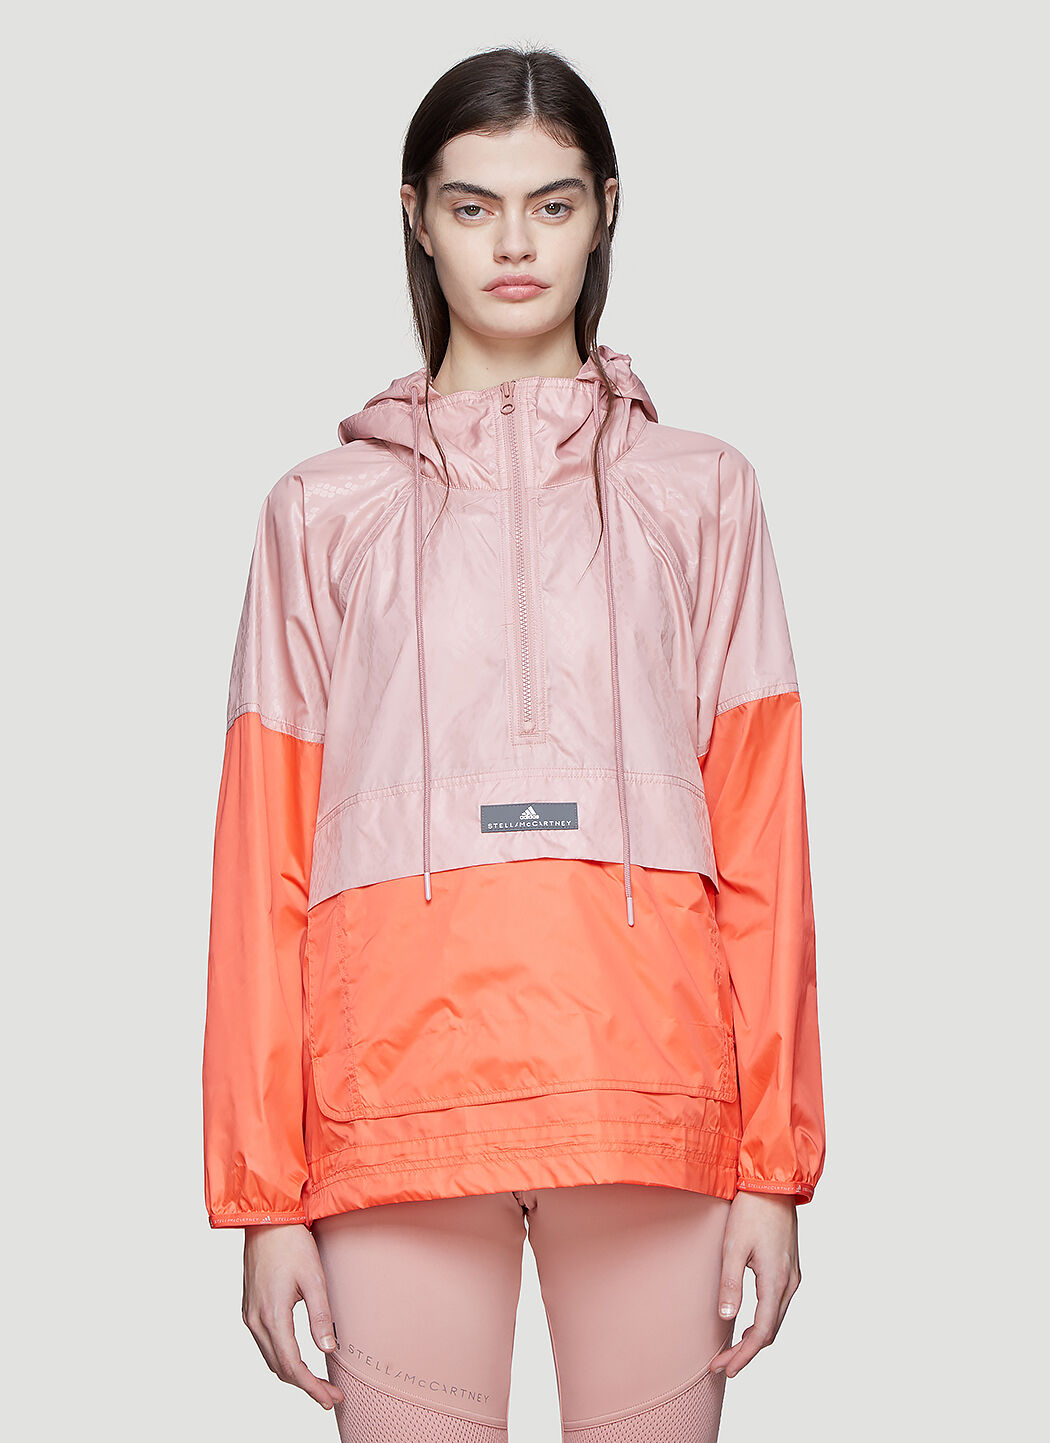 adidas Damen by Stella McCartney Jacken Rosa, S: